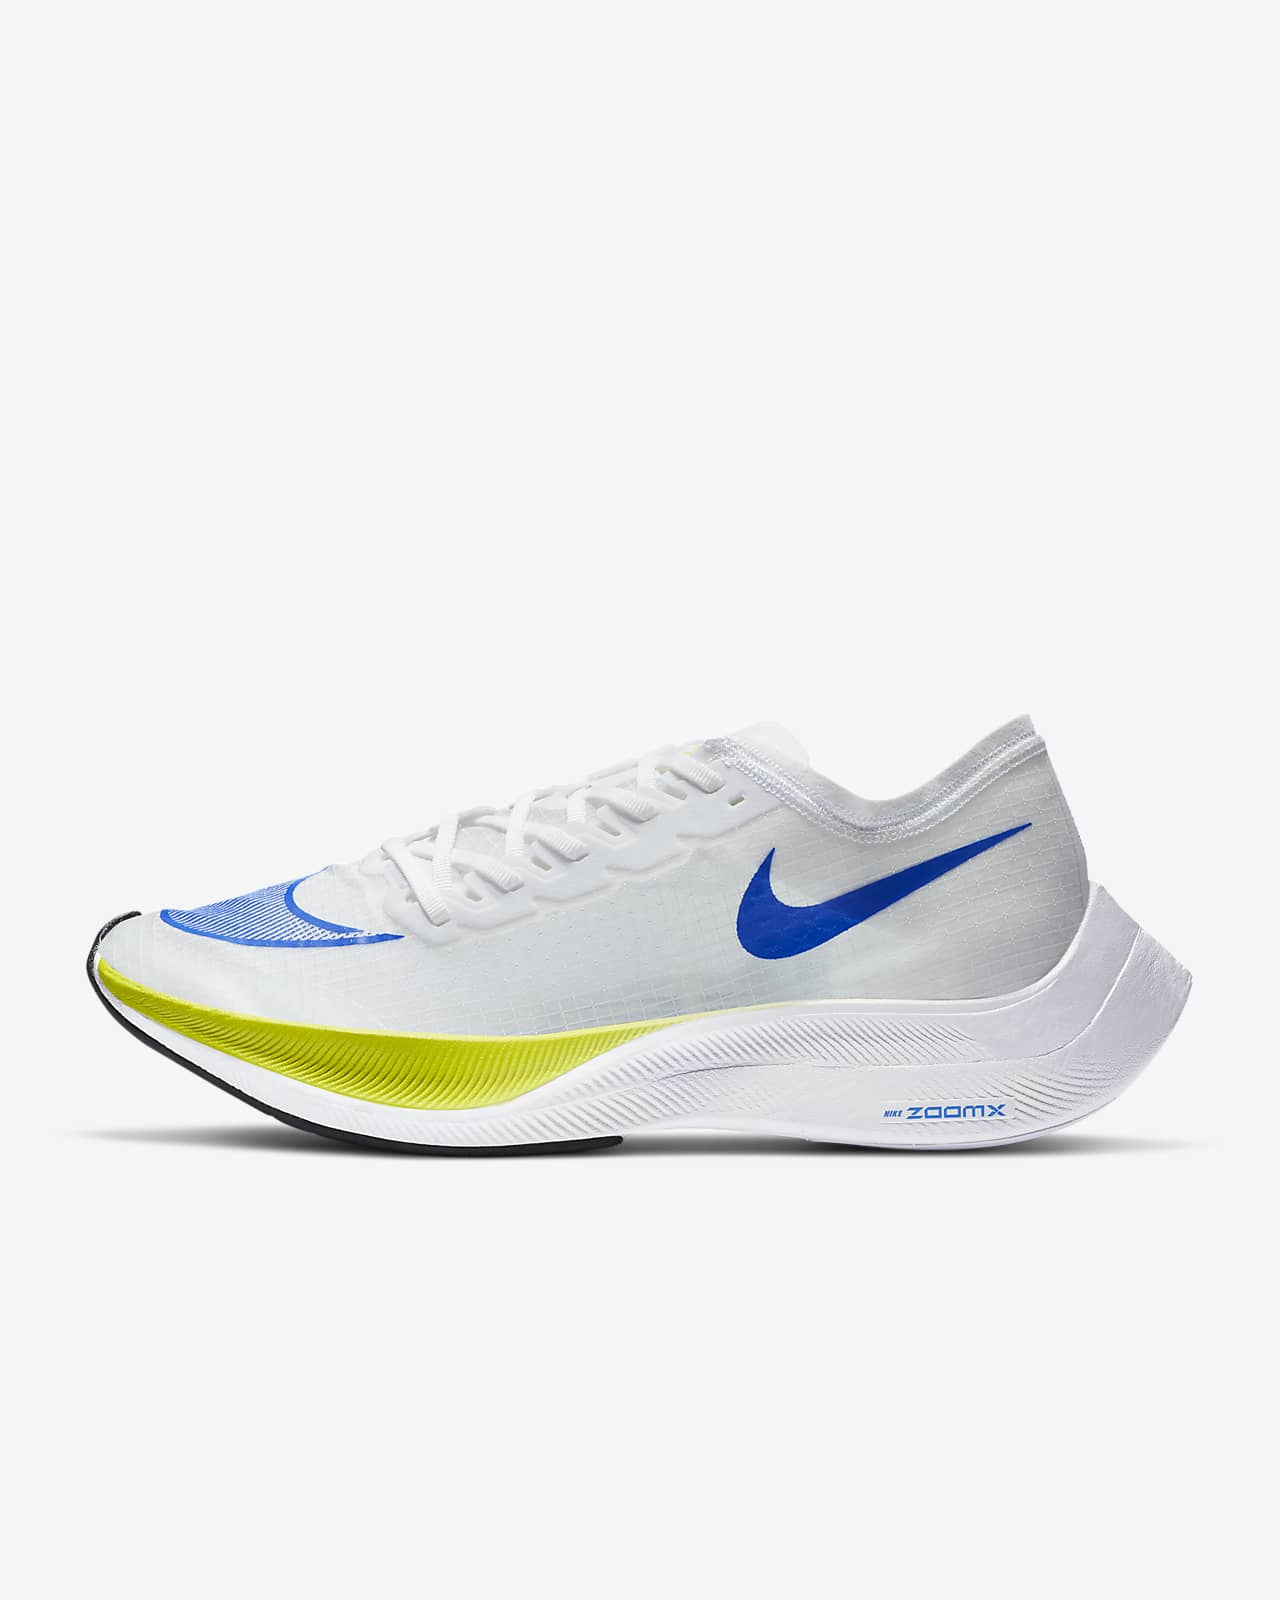 Sapatilhas de running Nike ZoomX Vaporfly NEXT%